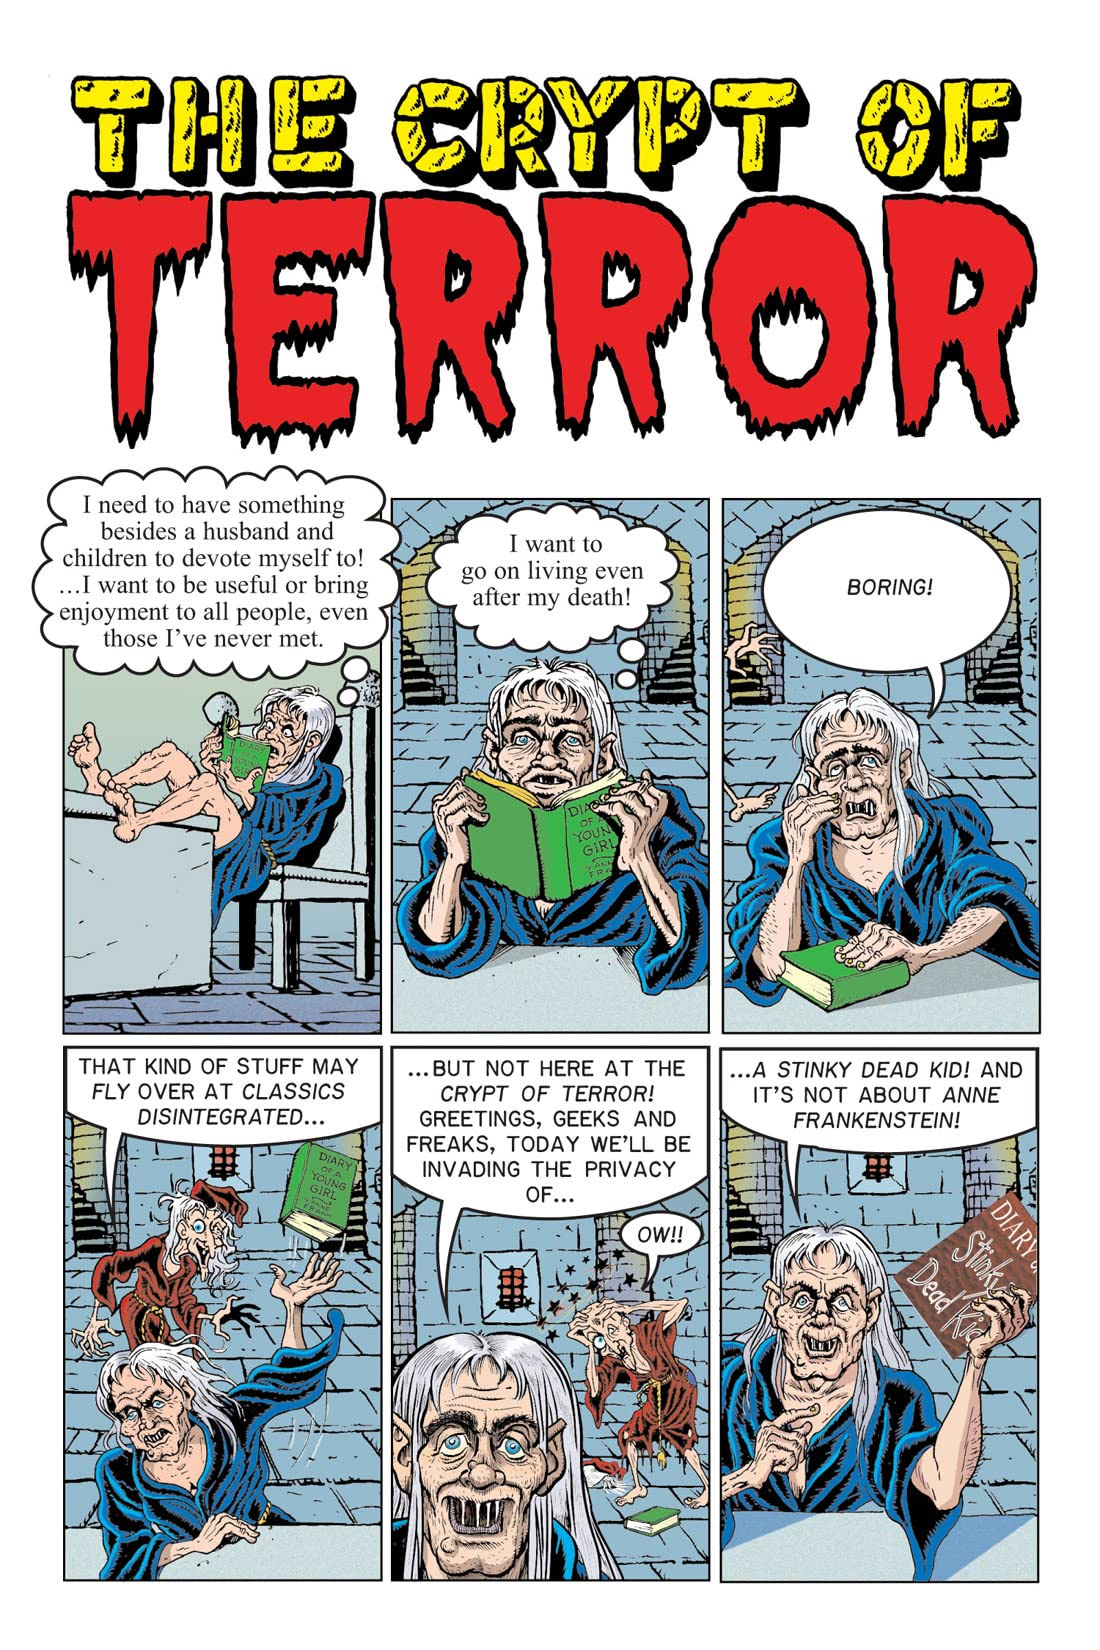 Tales From the Crypt Vol. 8: Diary of a Stinky Dead Kid Preview